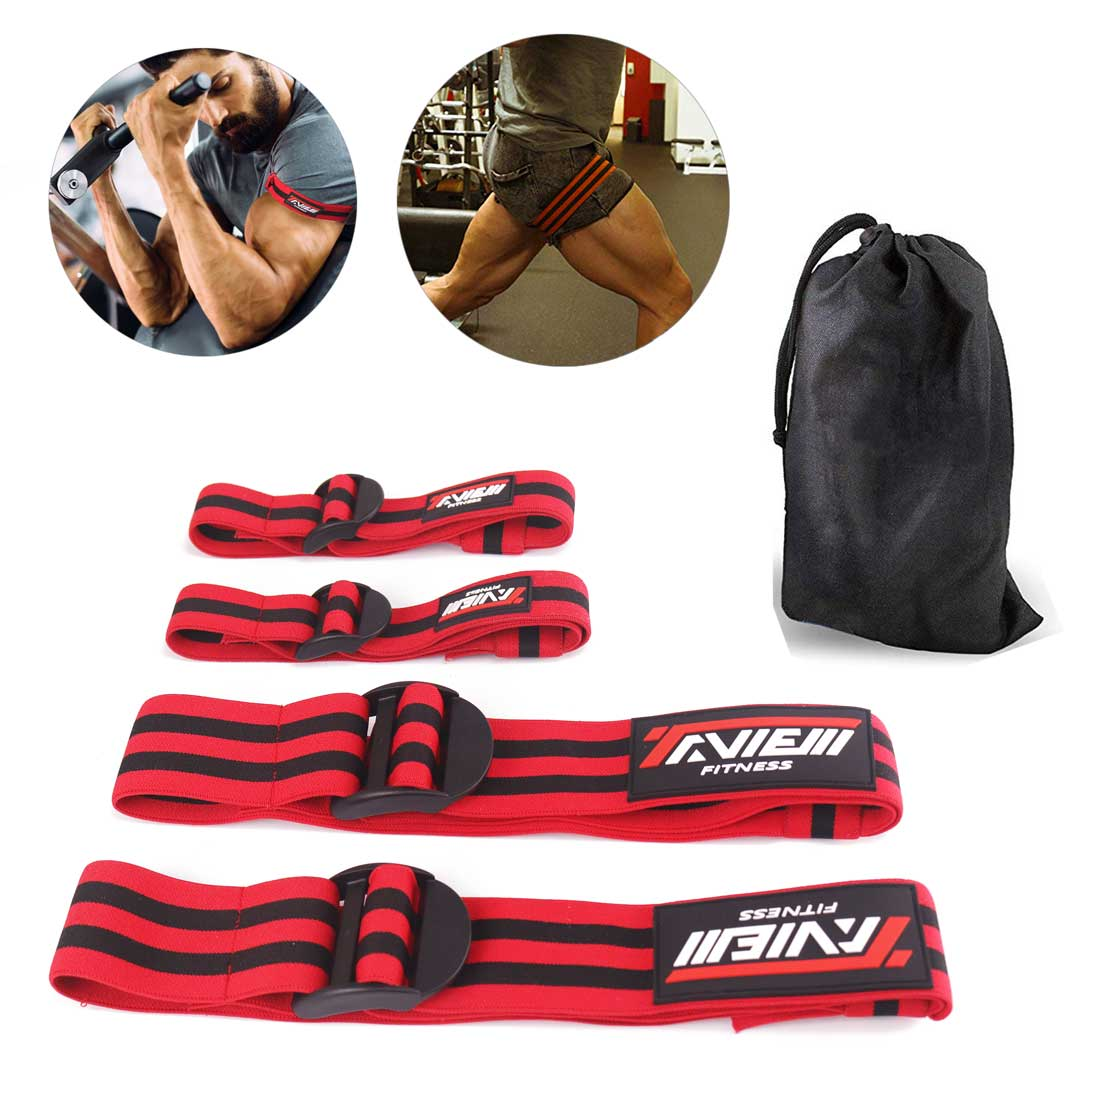 Fitness Occlusion Training Bands Bodybuilding Weight Blood Flow Restriction Bands Arm Leg Wraps Fast Muscle Growth